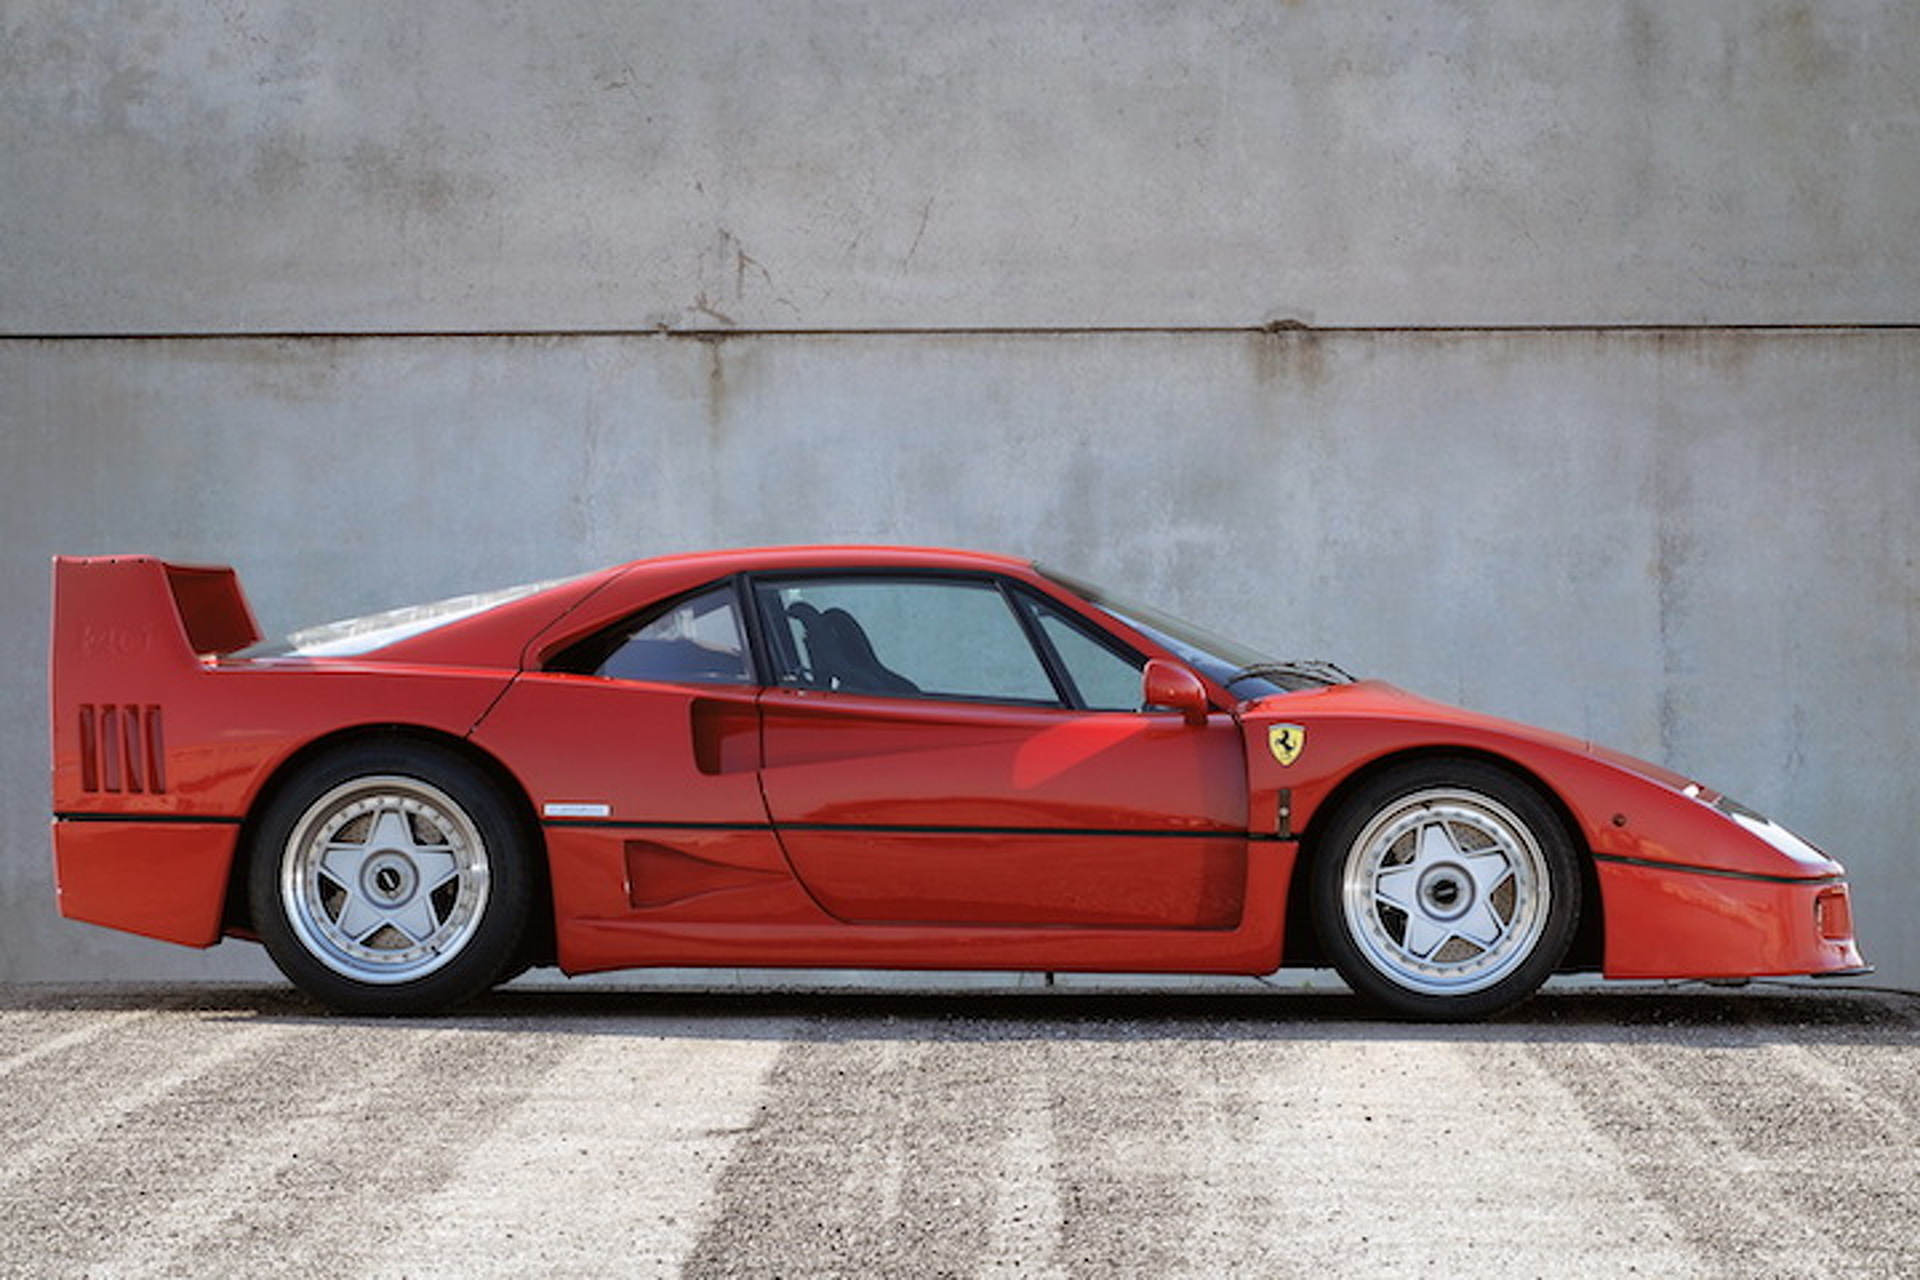 This Car Collection Sold at Pebble Beach for Absurd $67 Million